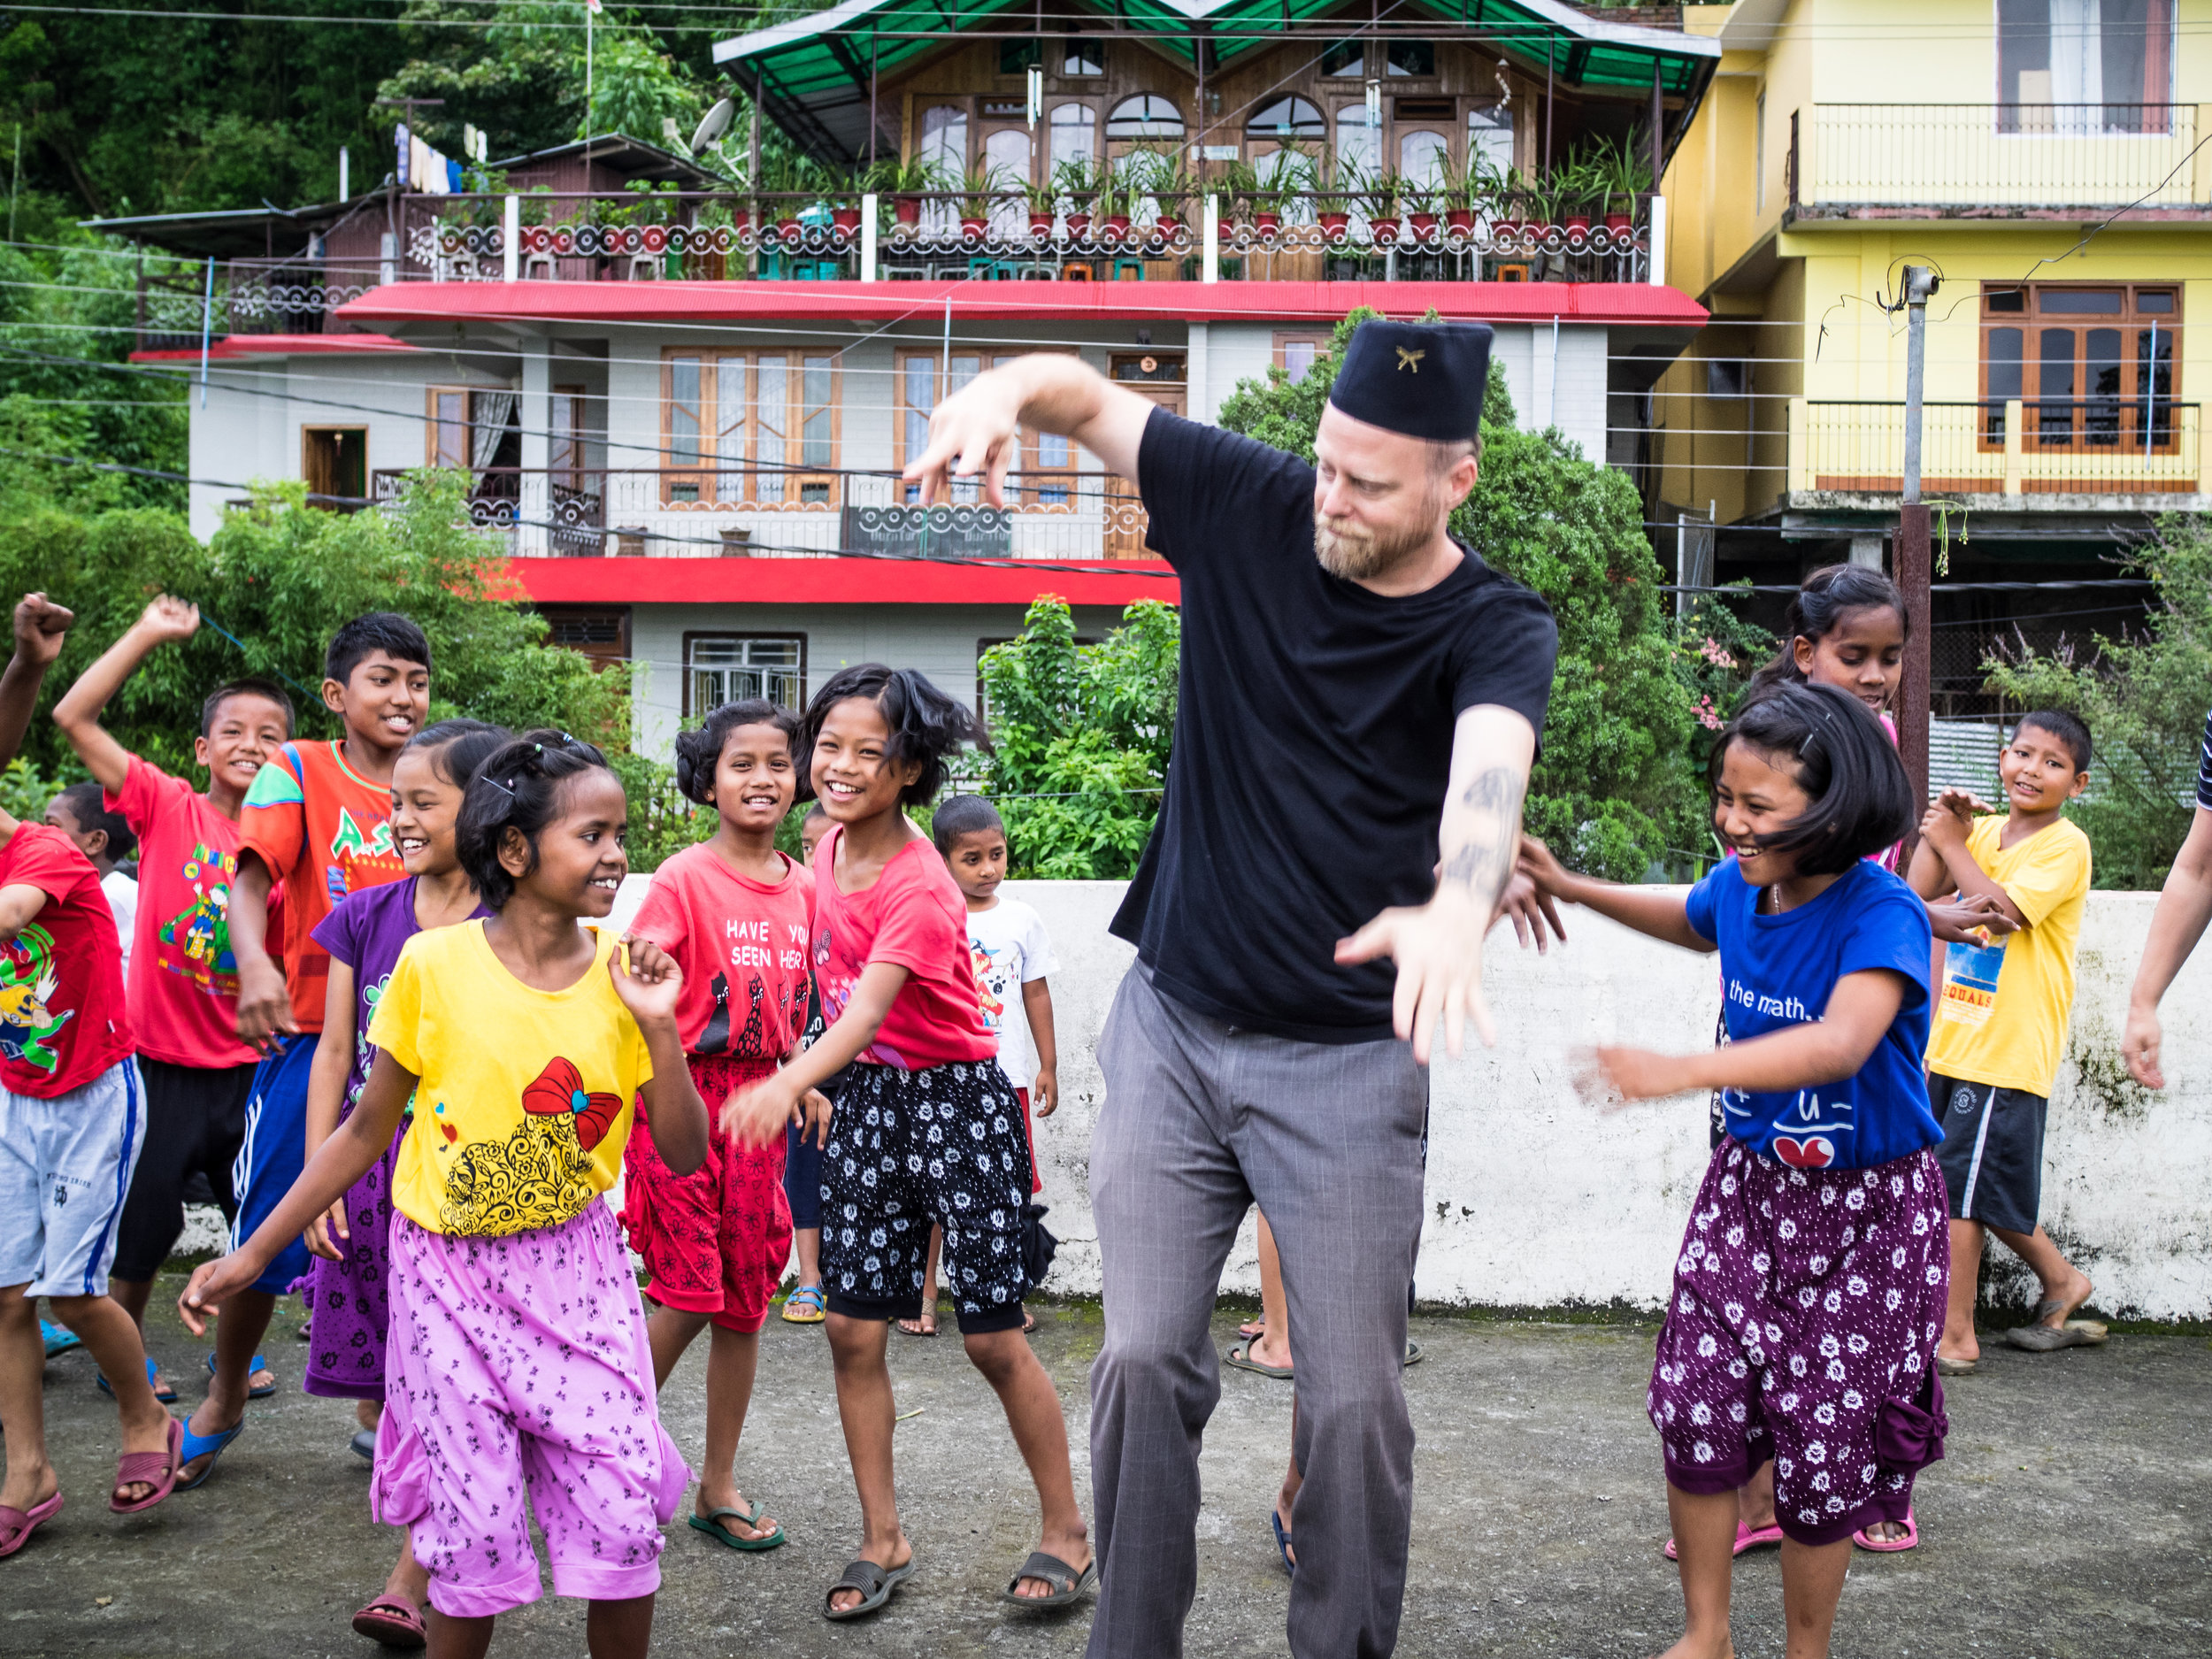 Executive Director John McCollum dancing with the kids at the Kalimpong 2 Children's Home in the foothills of India's Himalayan mountains.